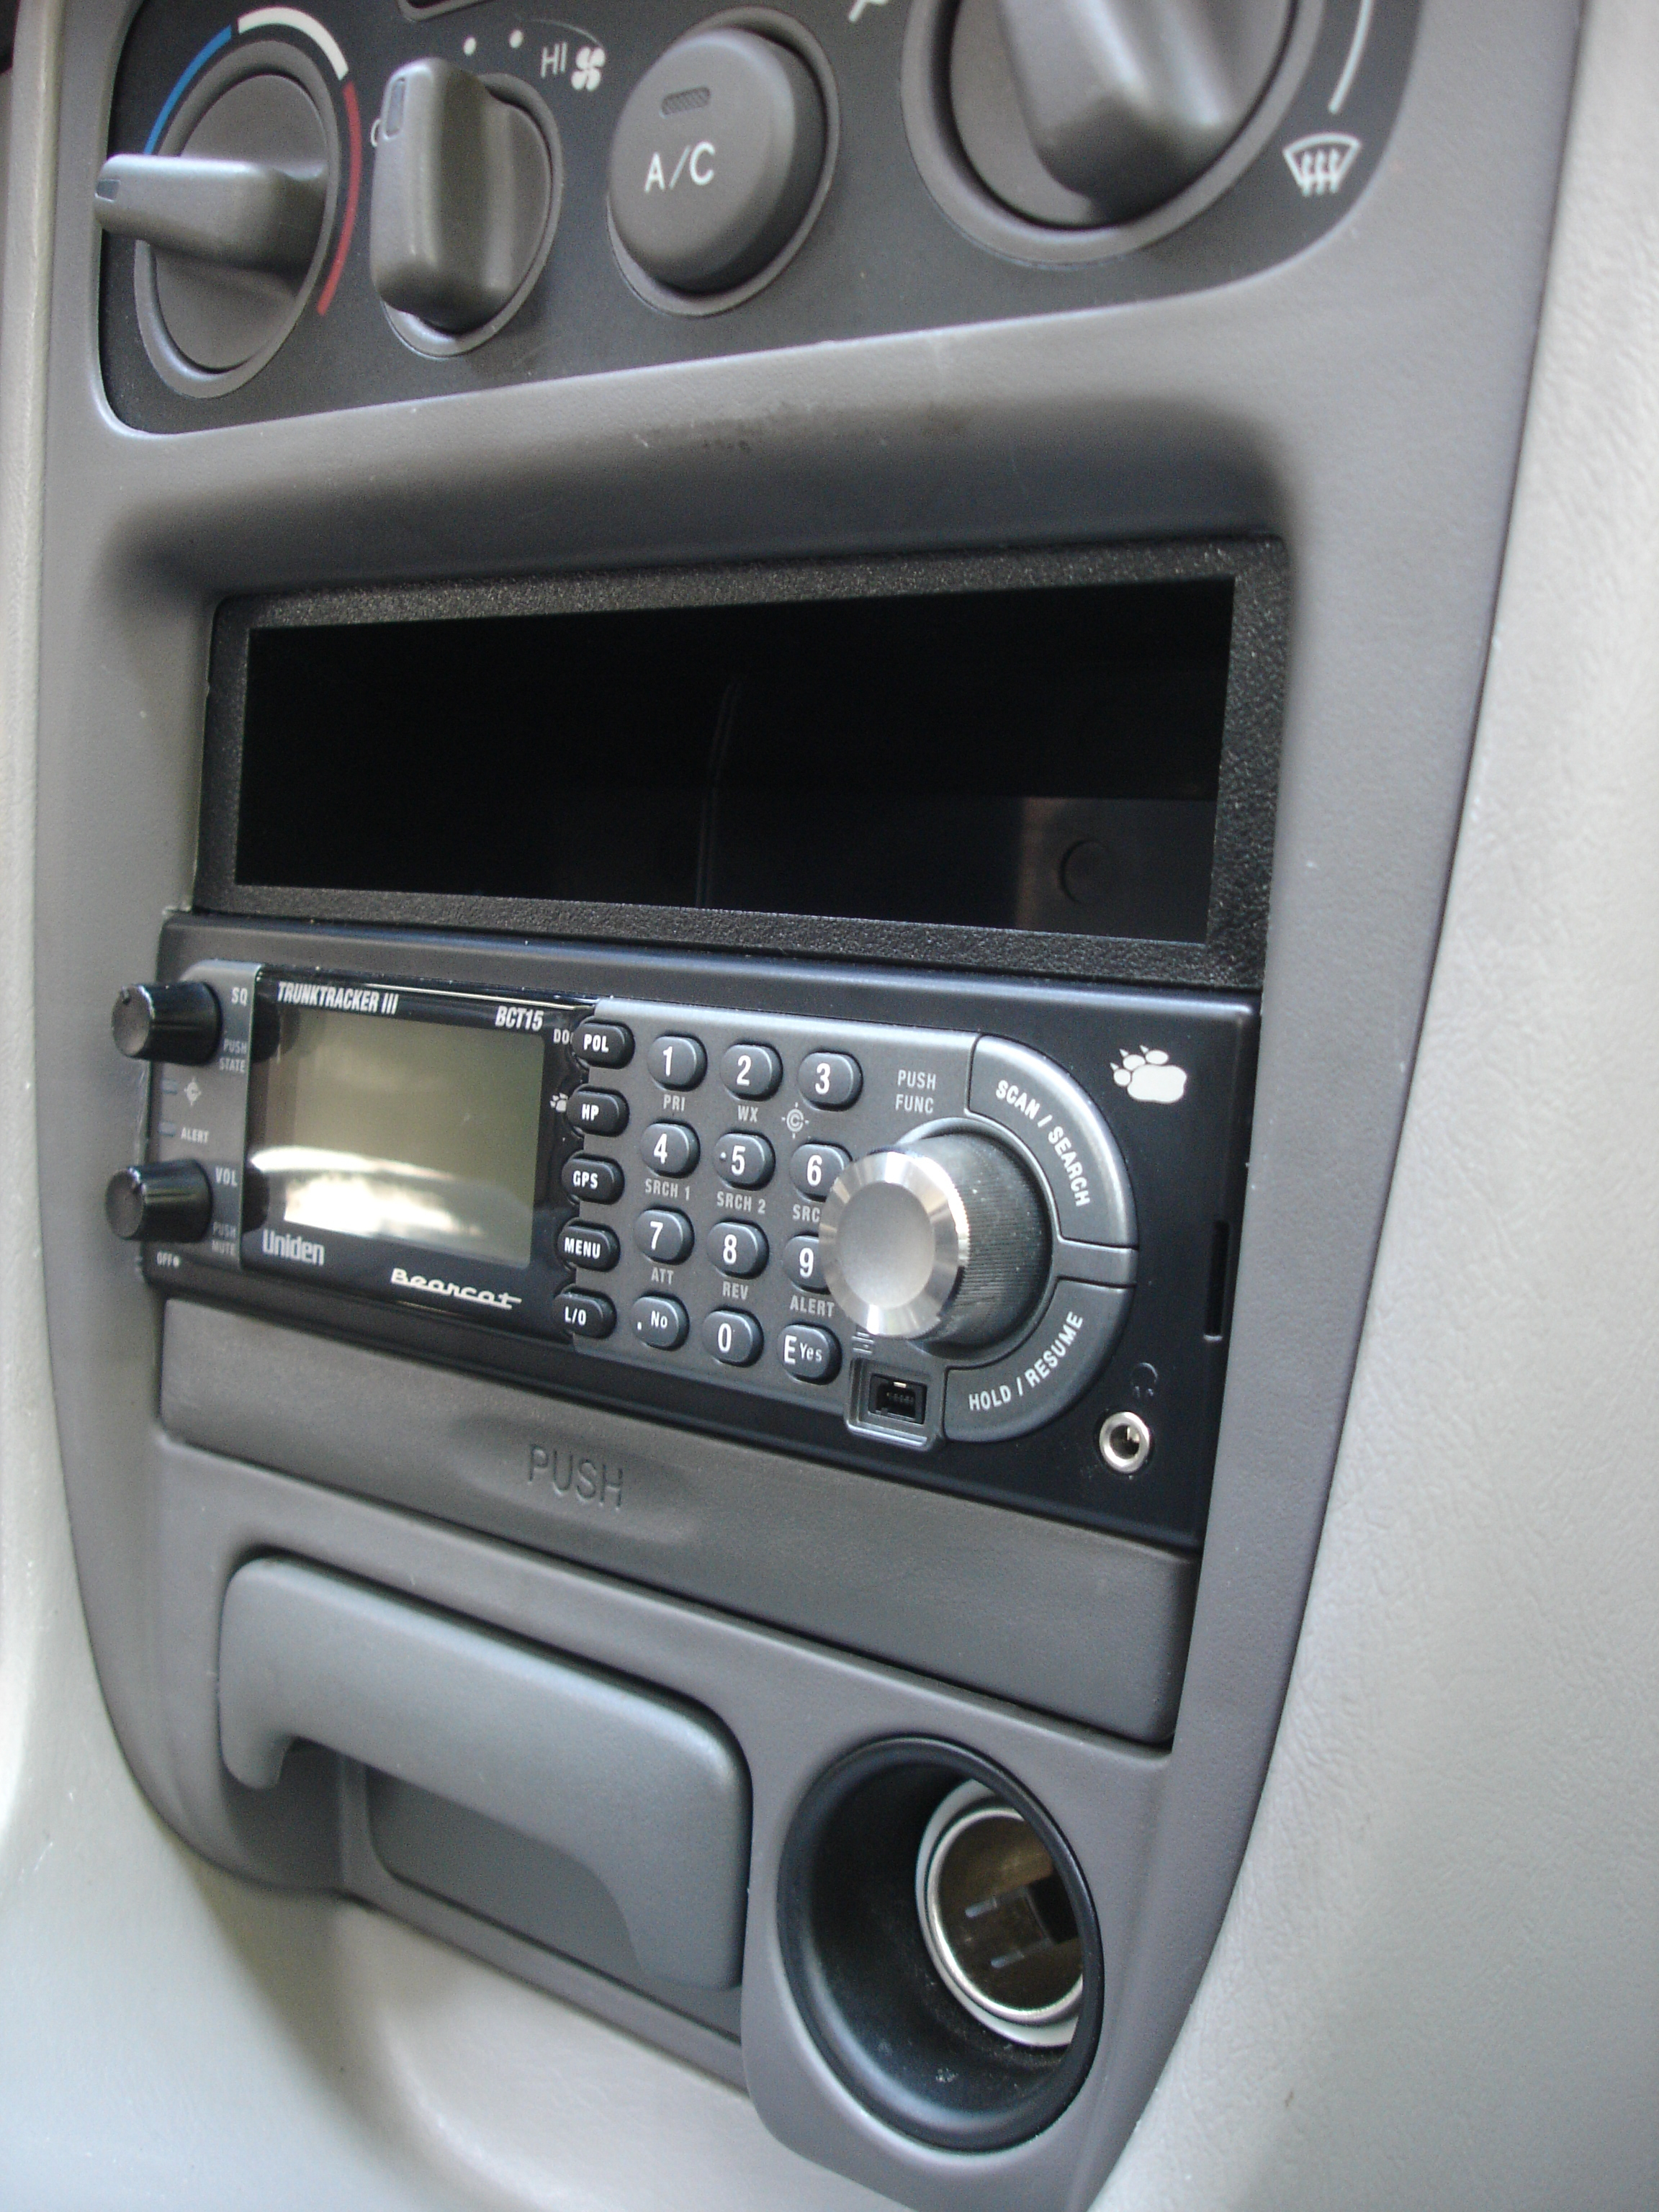 Digital Car Radio Best Buy